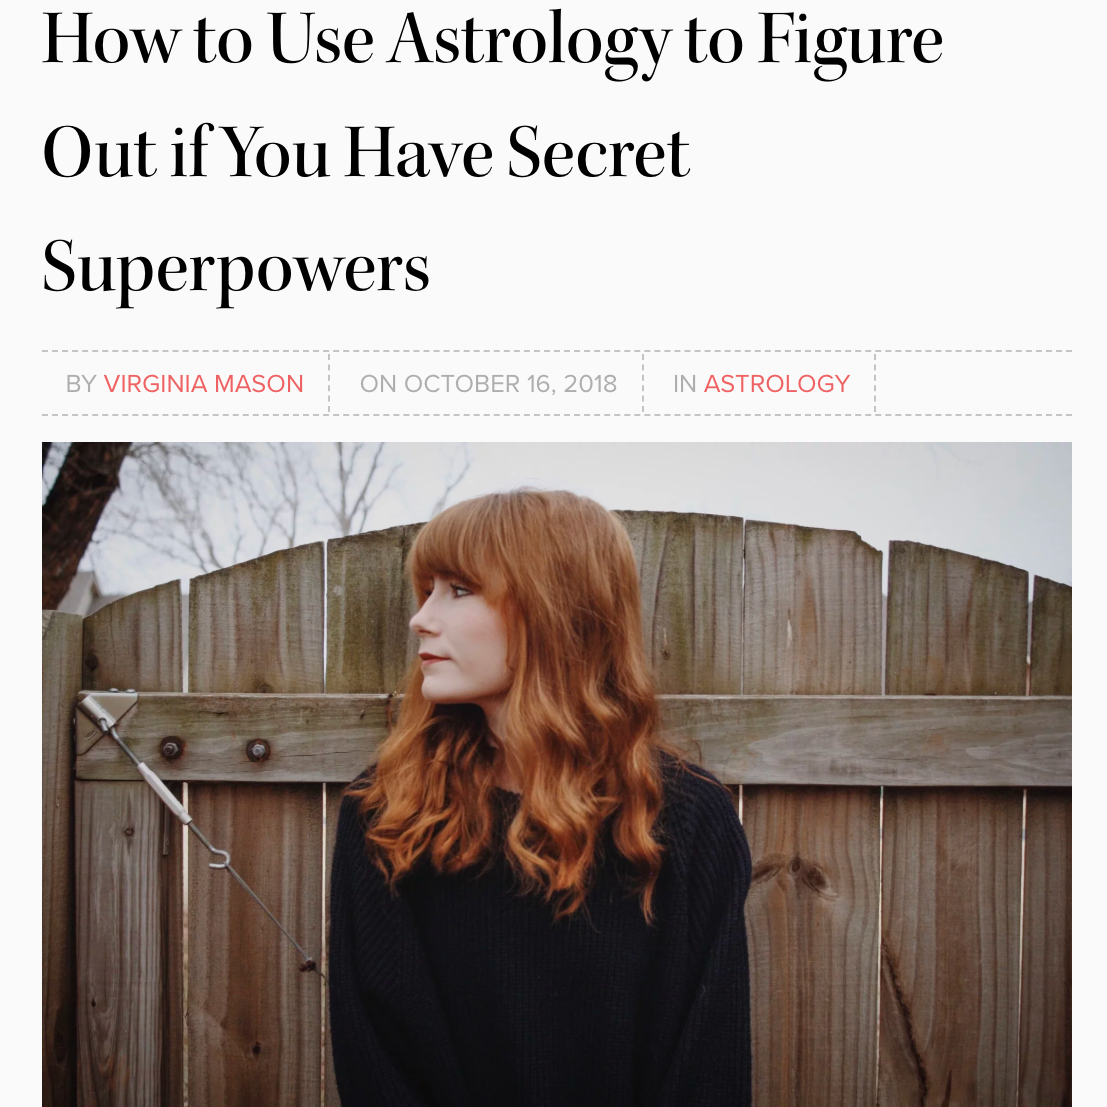 how-to-use-astrology-to-figure-out-if-you-have-secret-superpowers.png